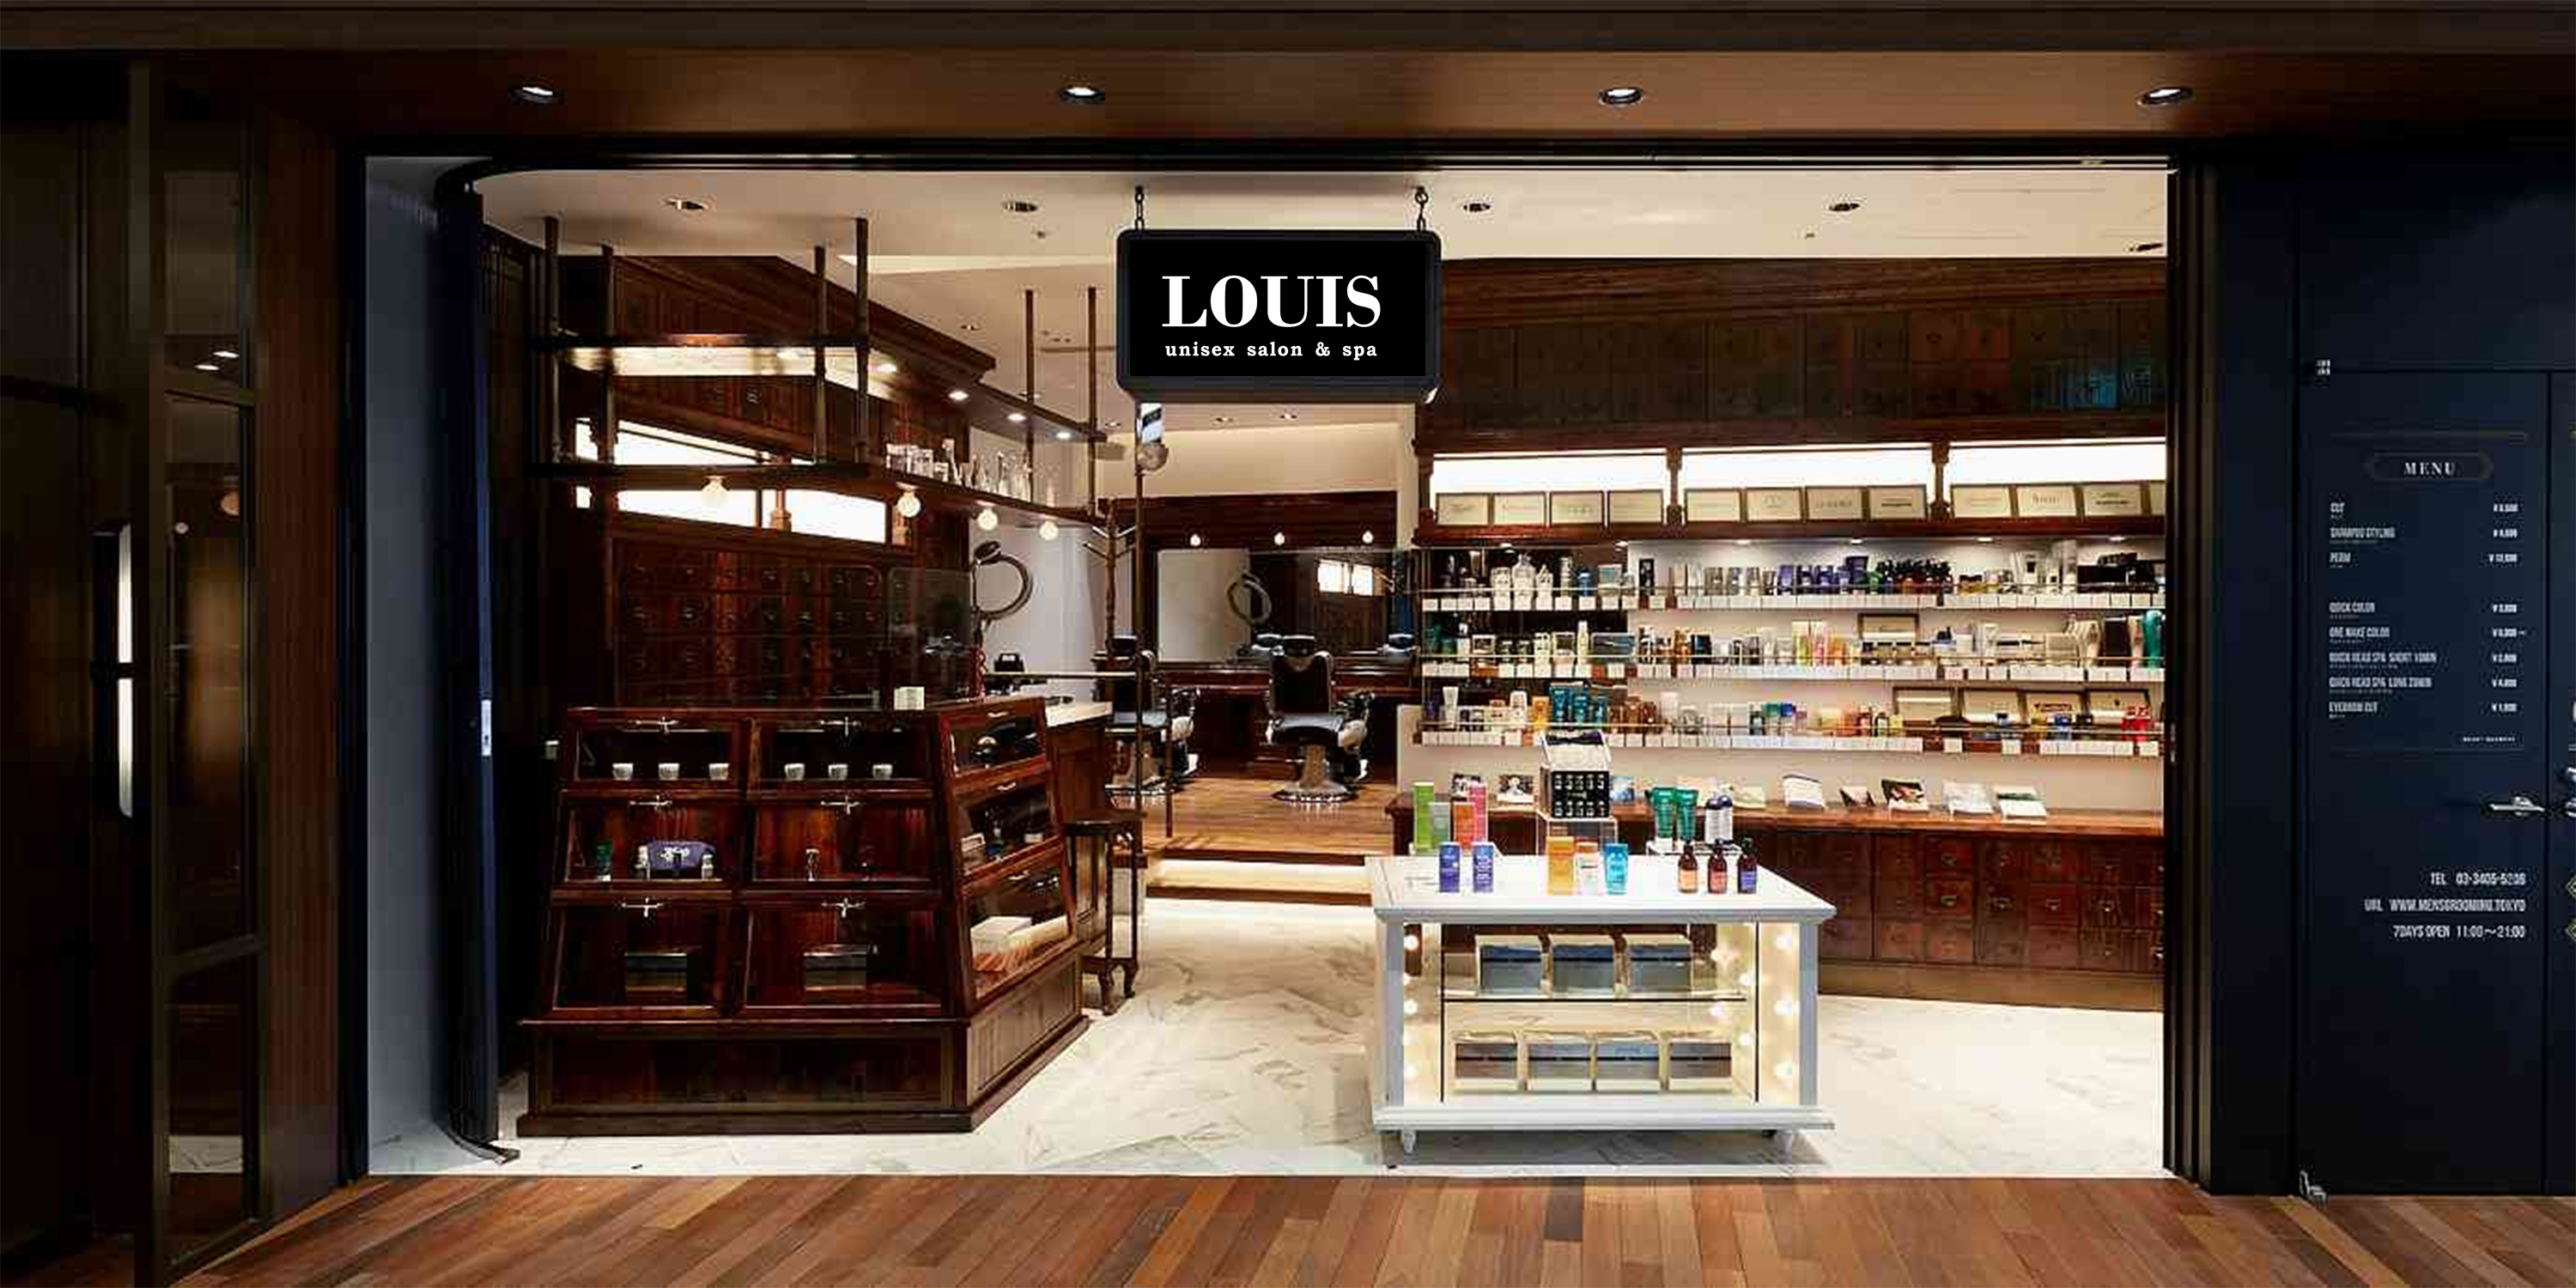 louis+unisex+salon+dubai 11